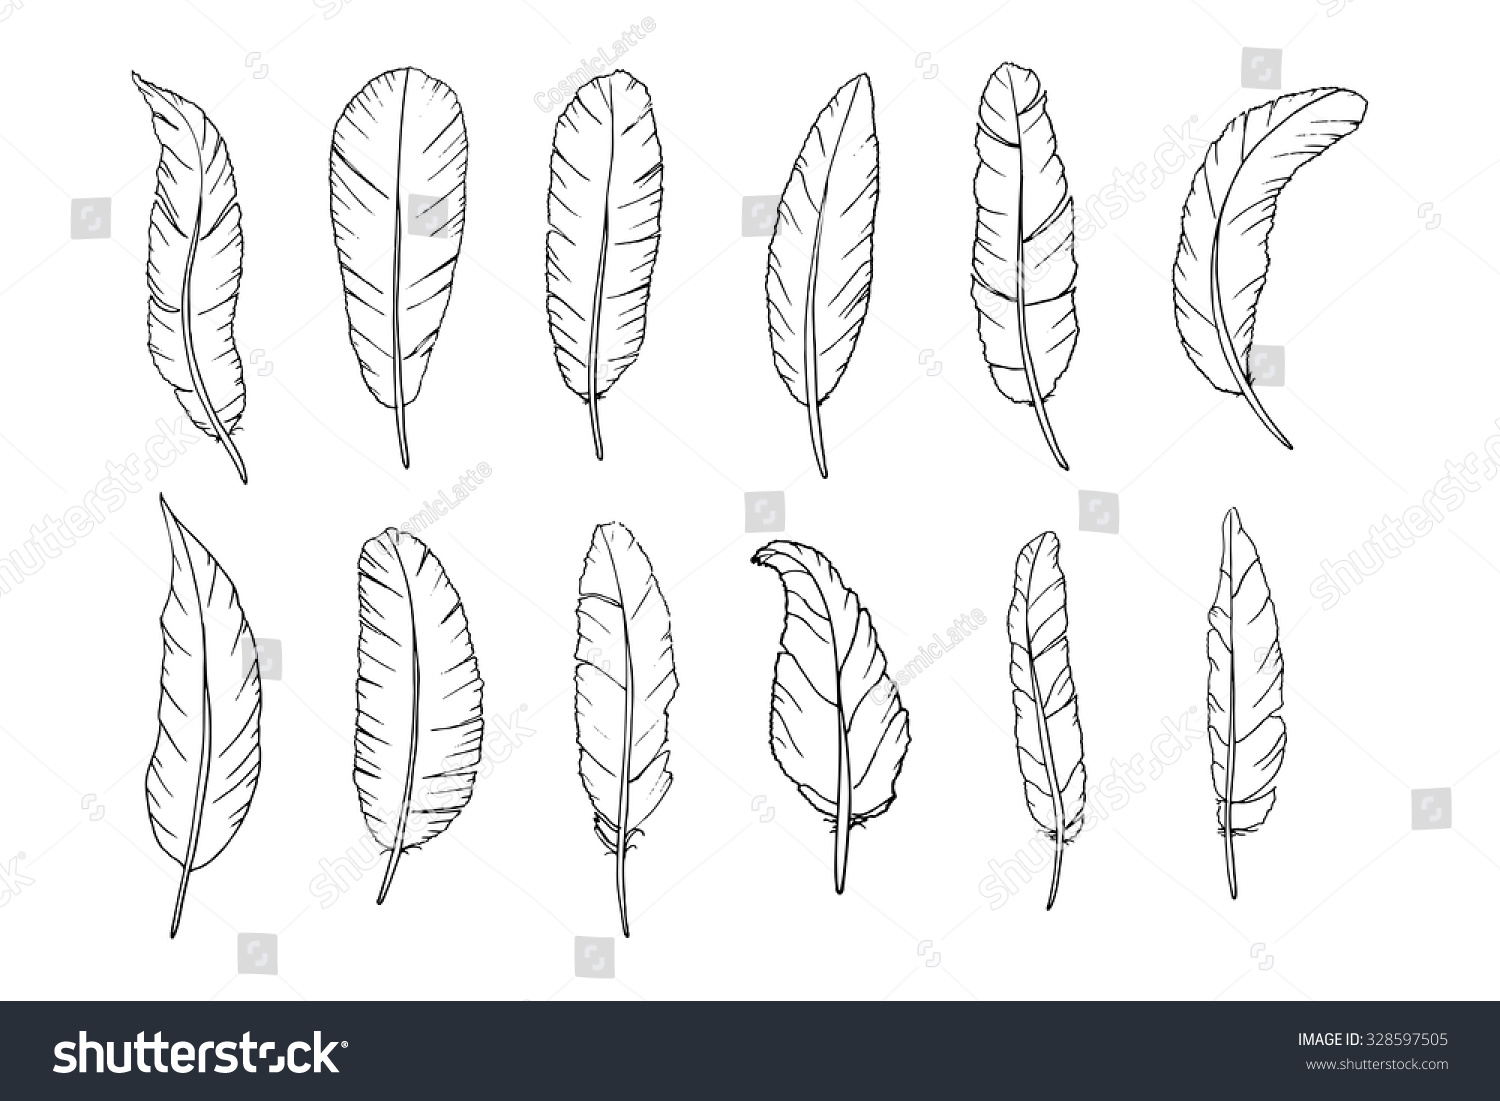 Vector Feathers Clipart Hand Drawn Design Stock Vector (Royalty Free.